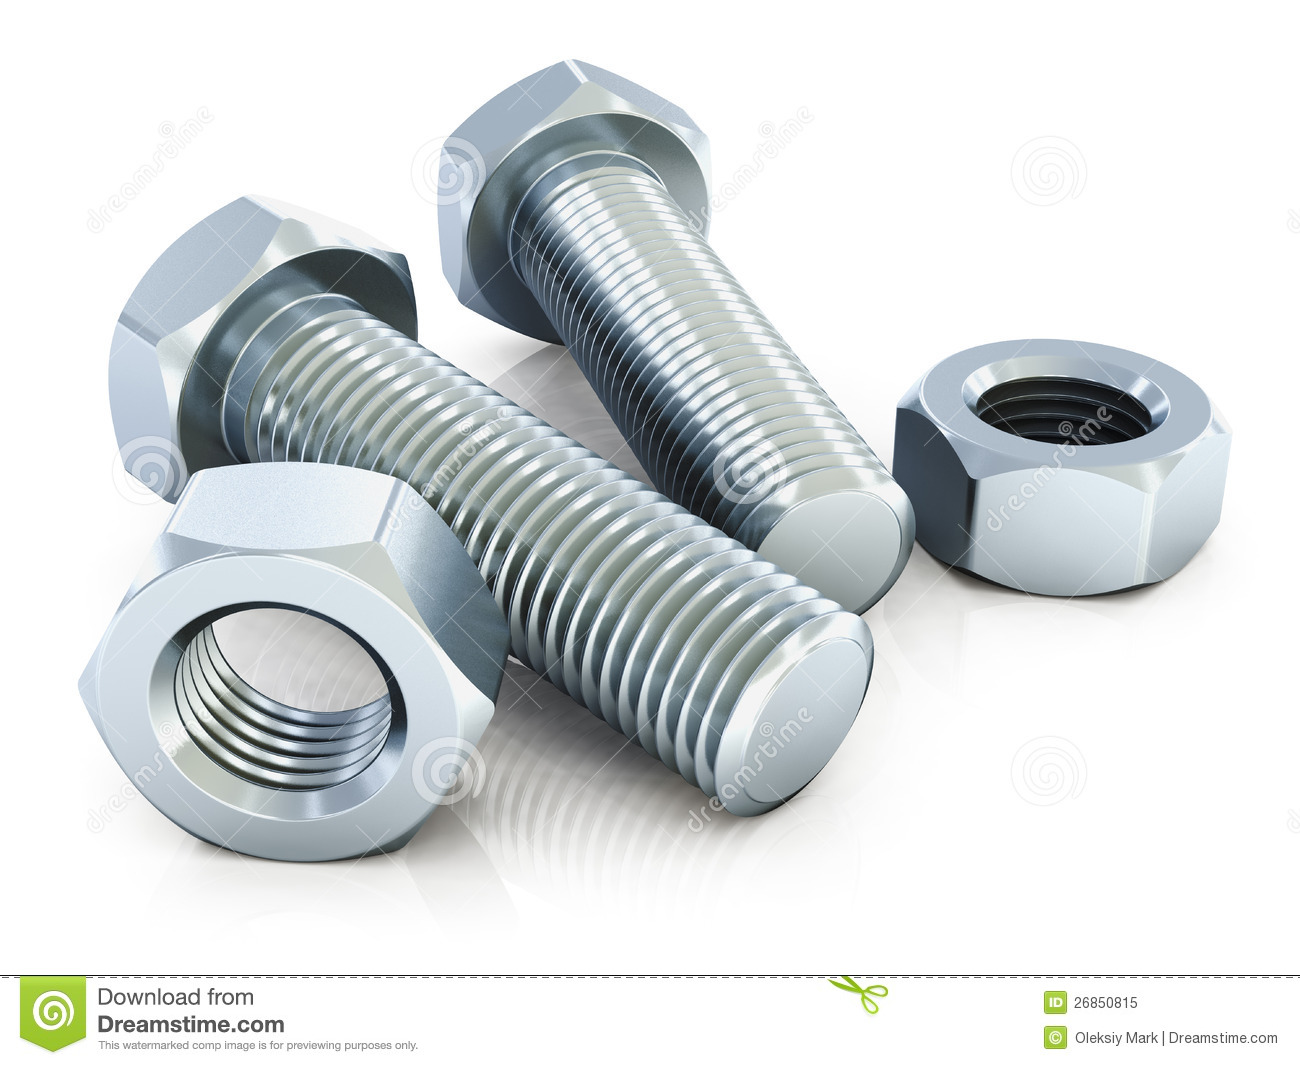 Pictures Of Nuts And Bolts >> Bolts And Nuts Stock Illustration Illustration Of Concept 26850815